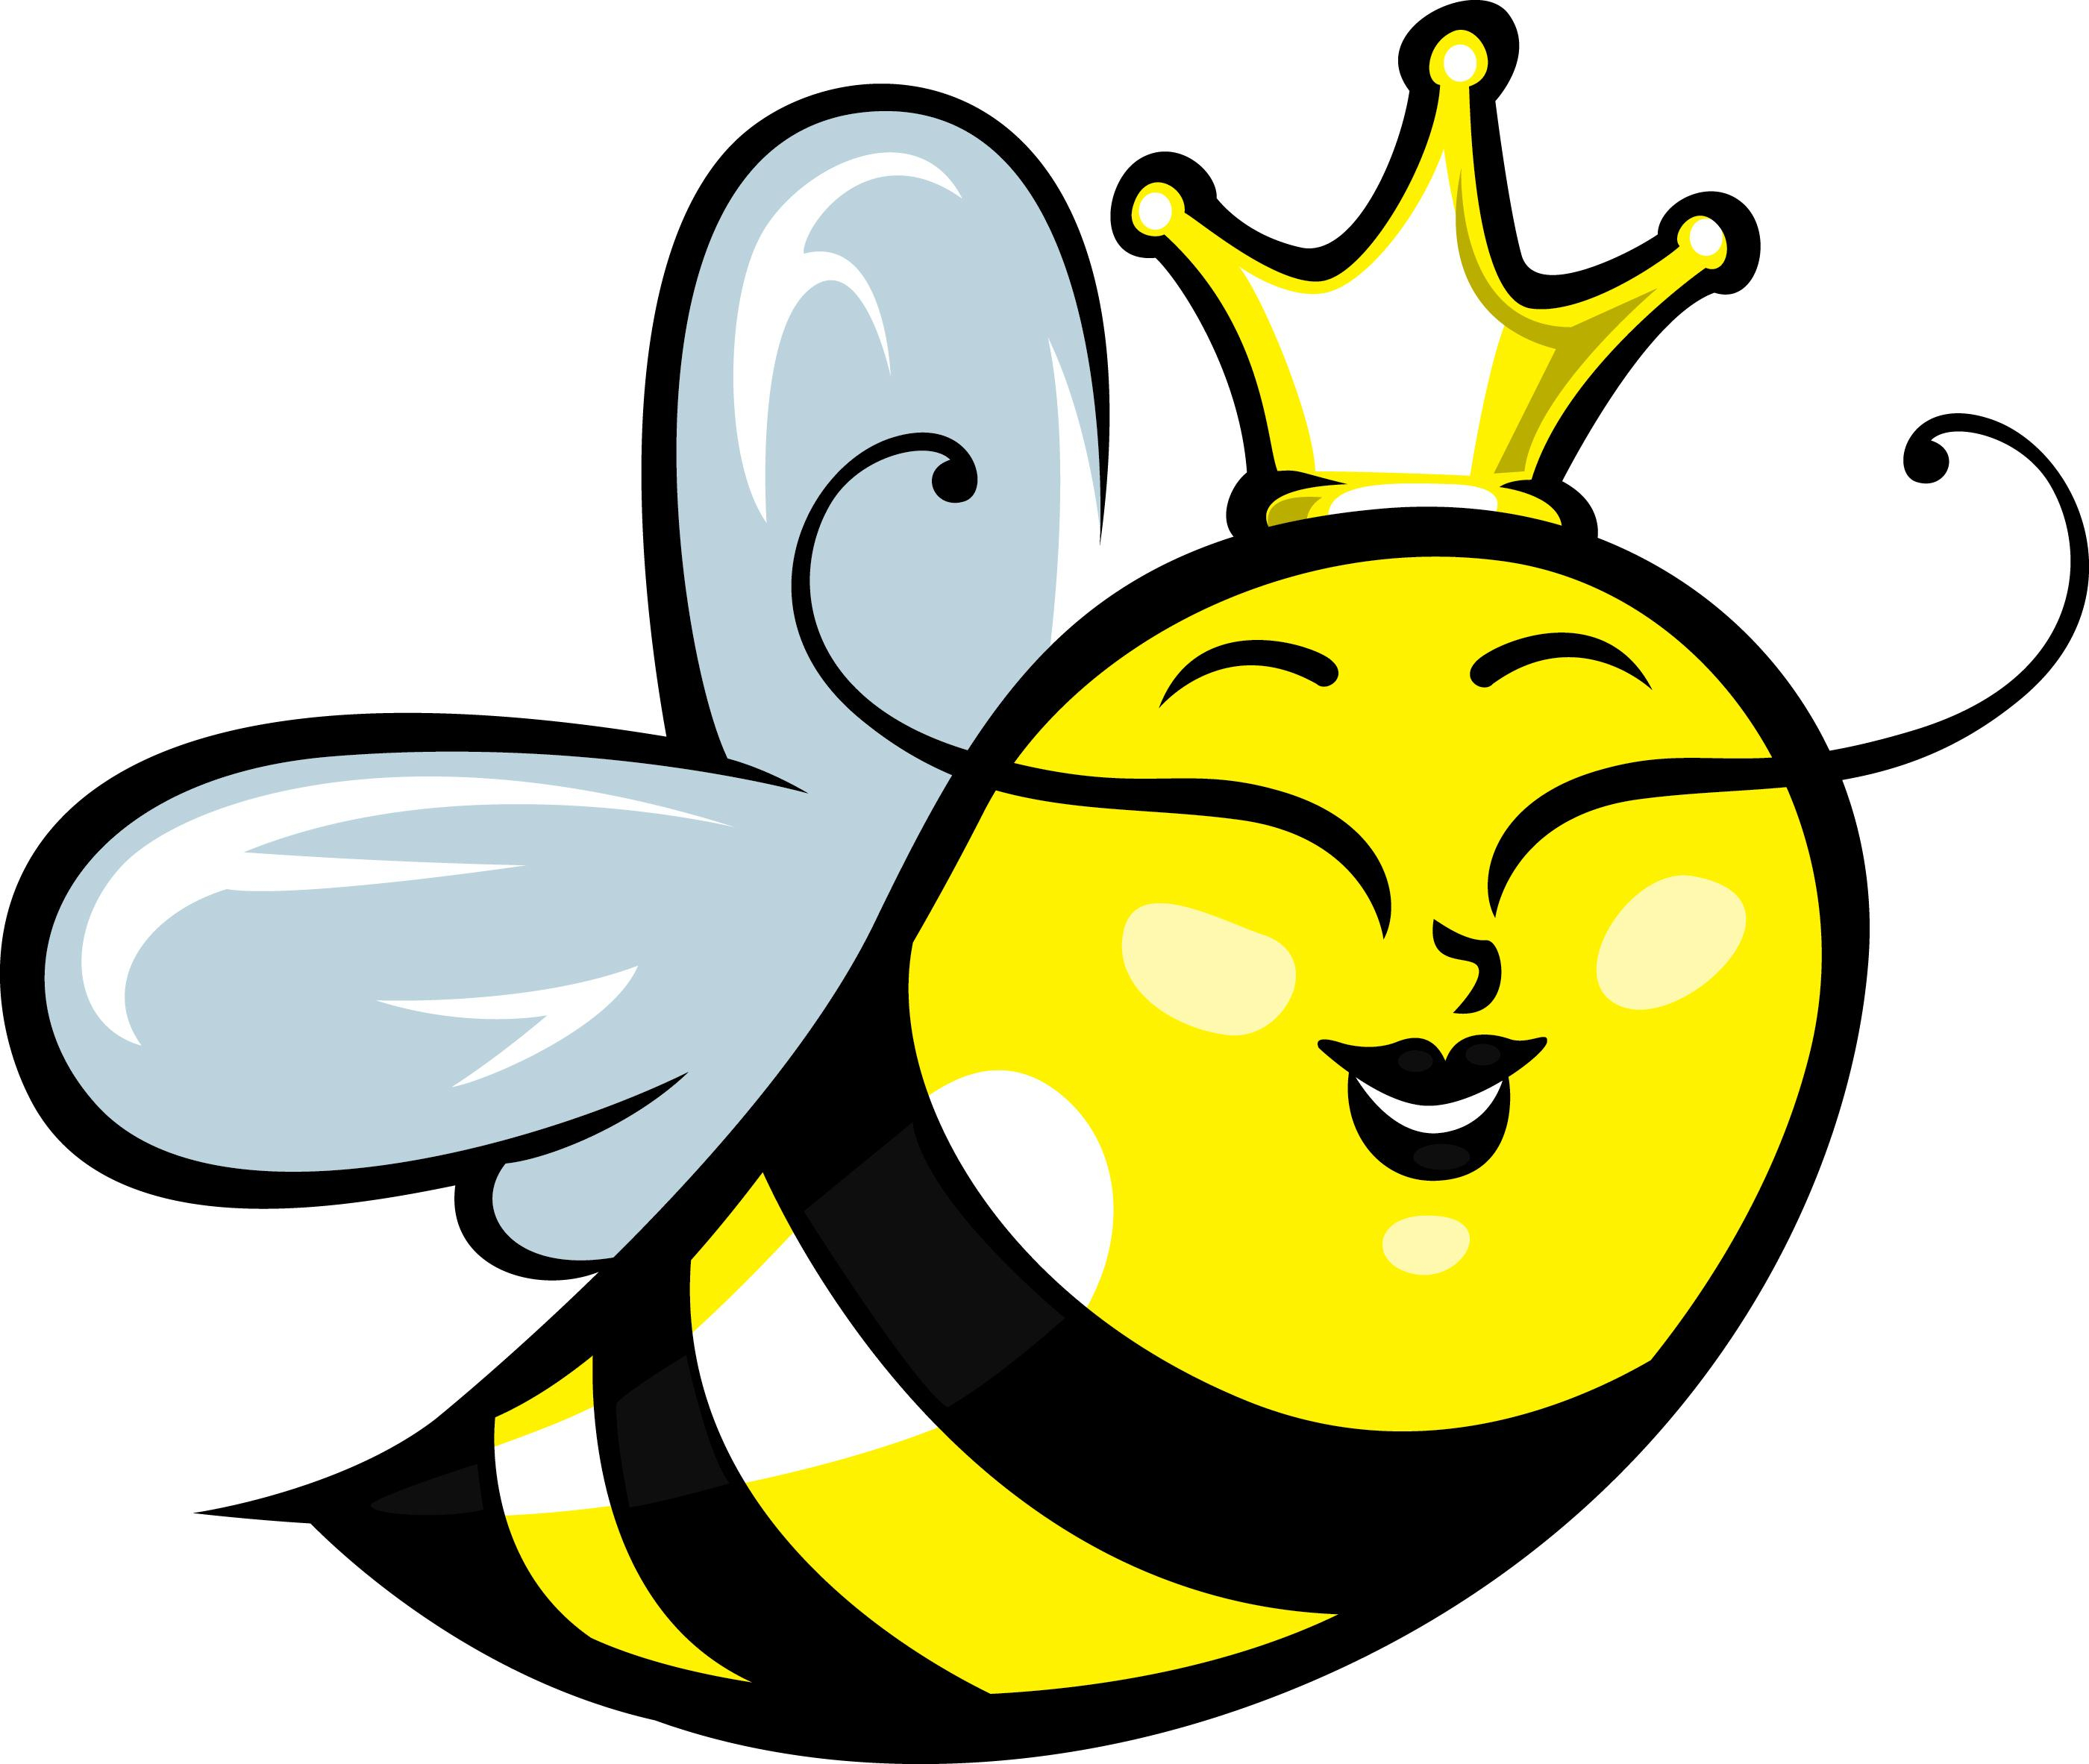 Bumble bee drawing cartoon. Bumblebee clipart